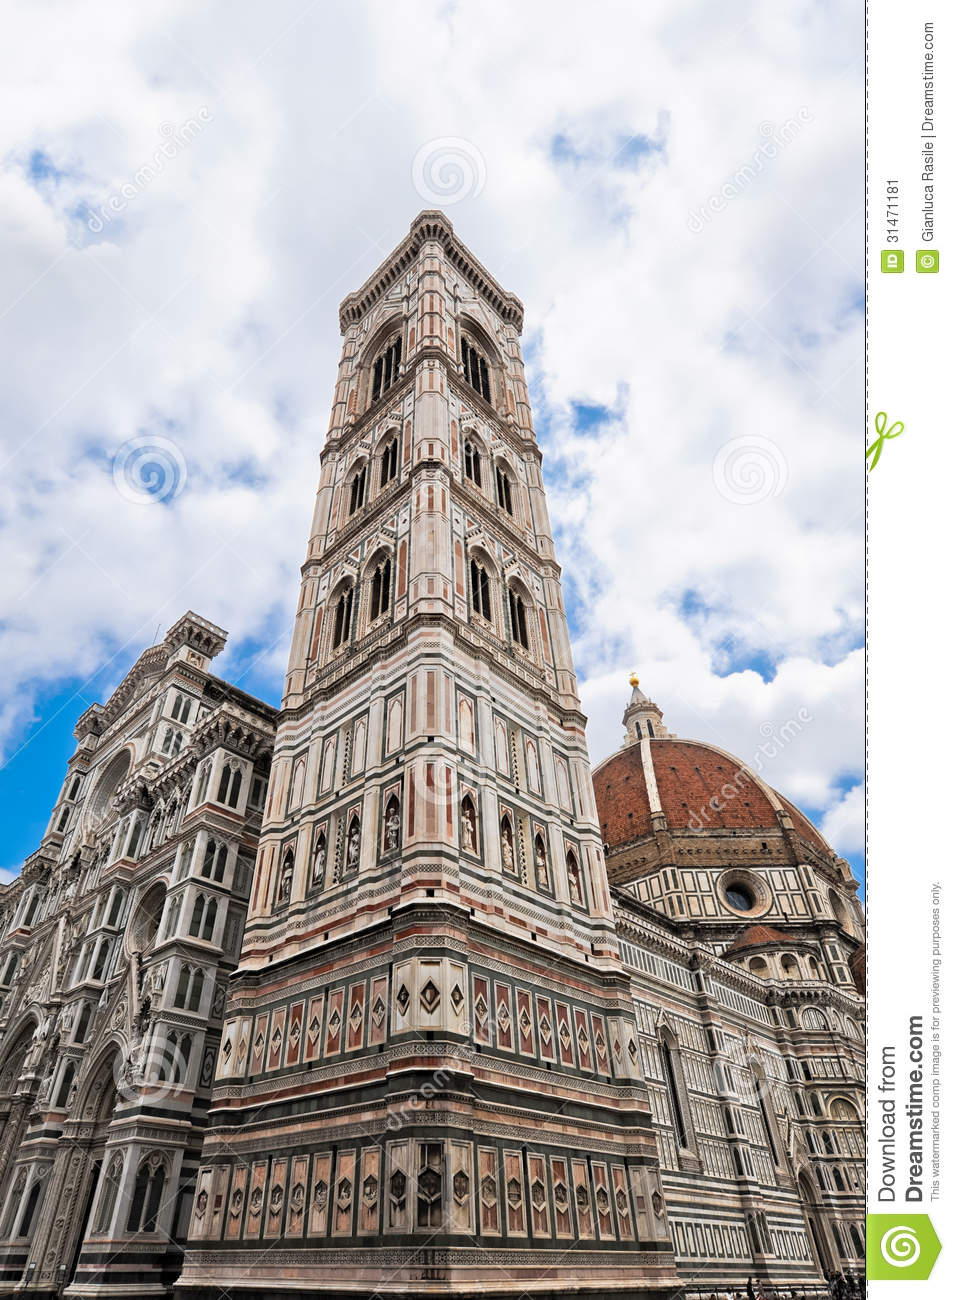 The Perspective Of The Giotto Bell Tower In Florence Stock